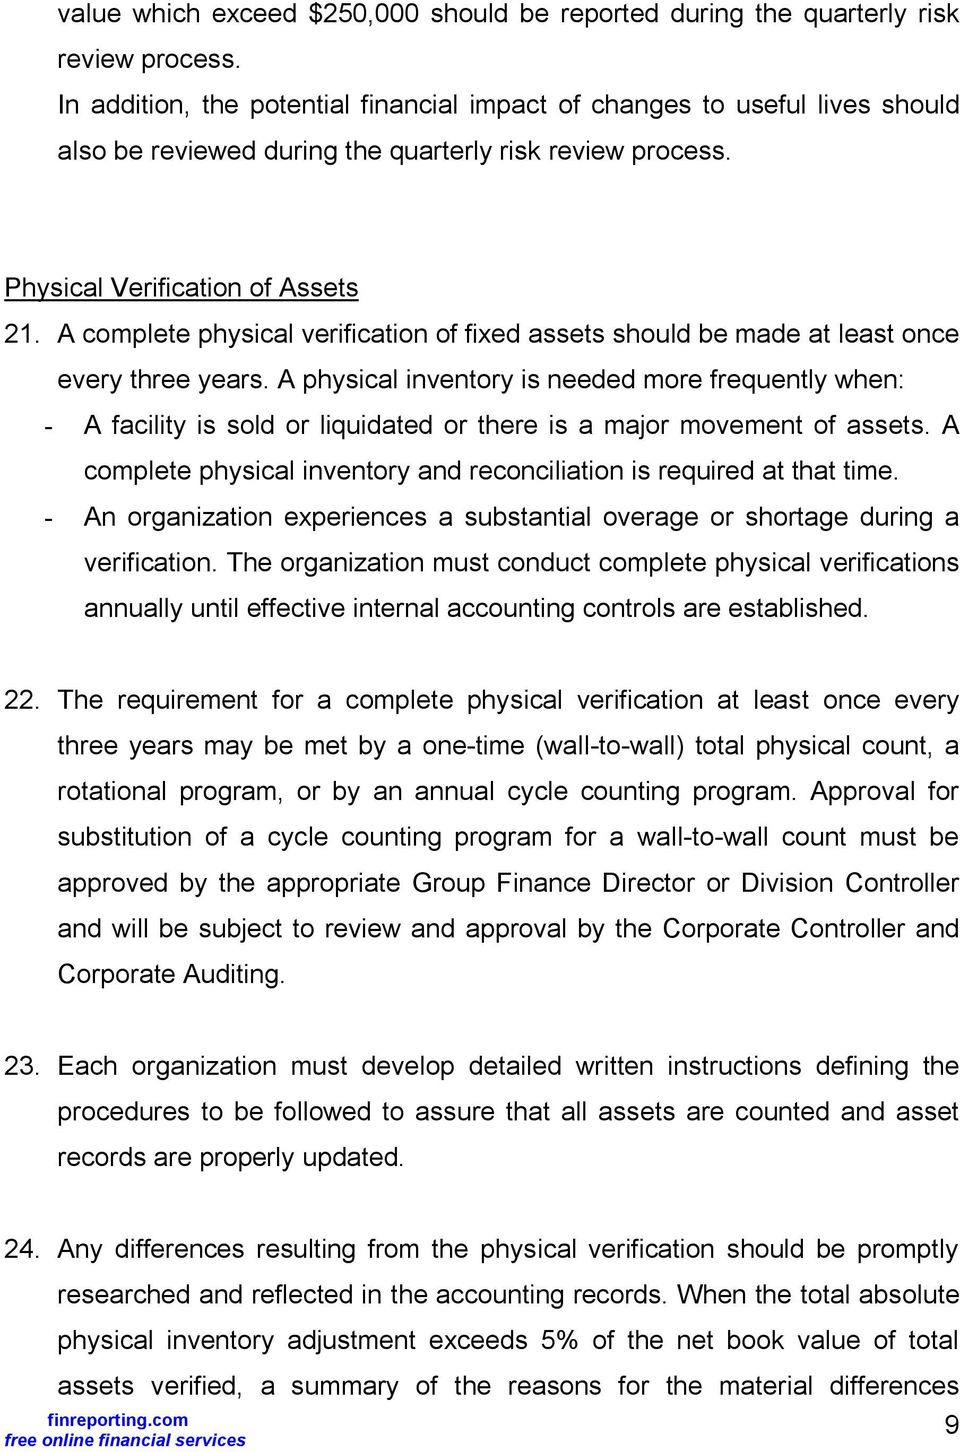 A complete physical verification of fixed assets should be made at least once every three years.